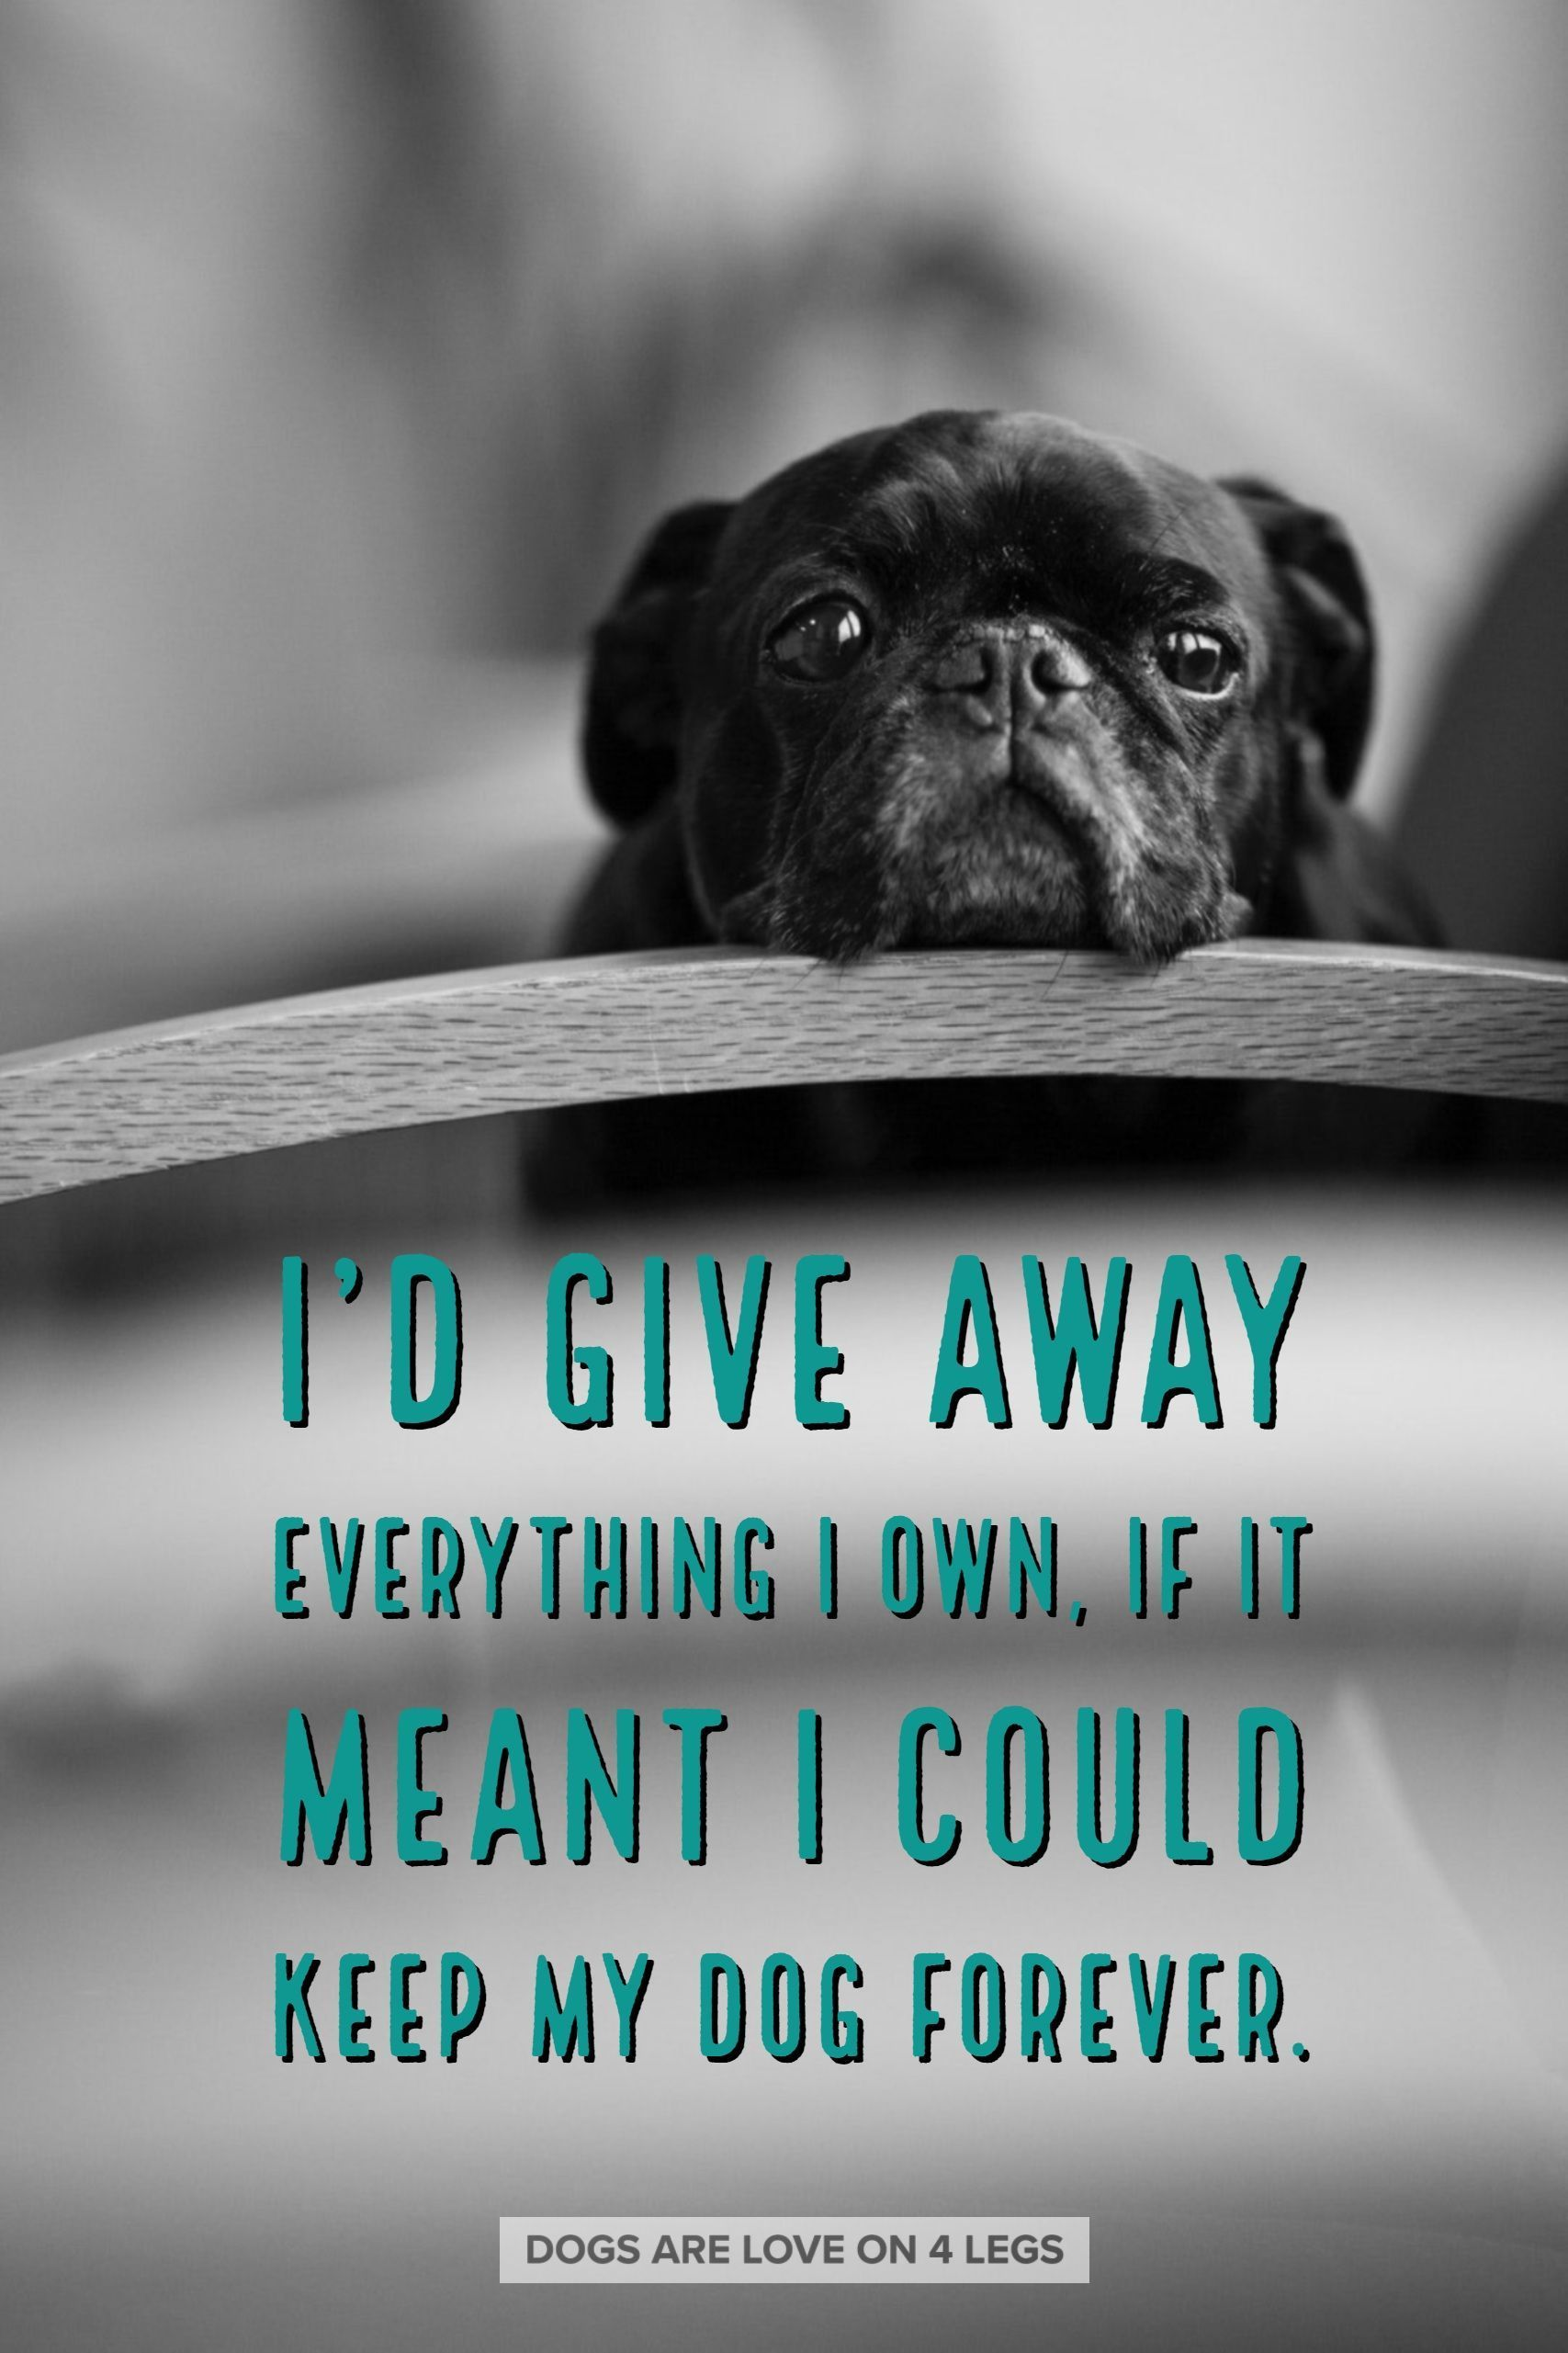 I D Give Away Everything I Own If It Meant I Could Keep My Dog Forever Dog Dog Quotes Inspirational Quotes Funny Quotes Dog Quotes Dog Love I Love Dogs